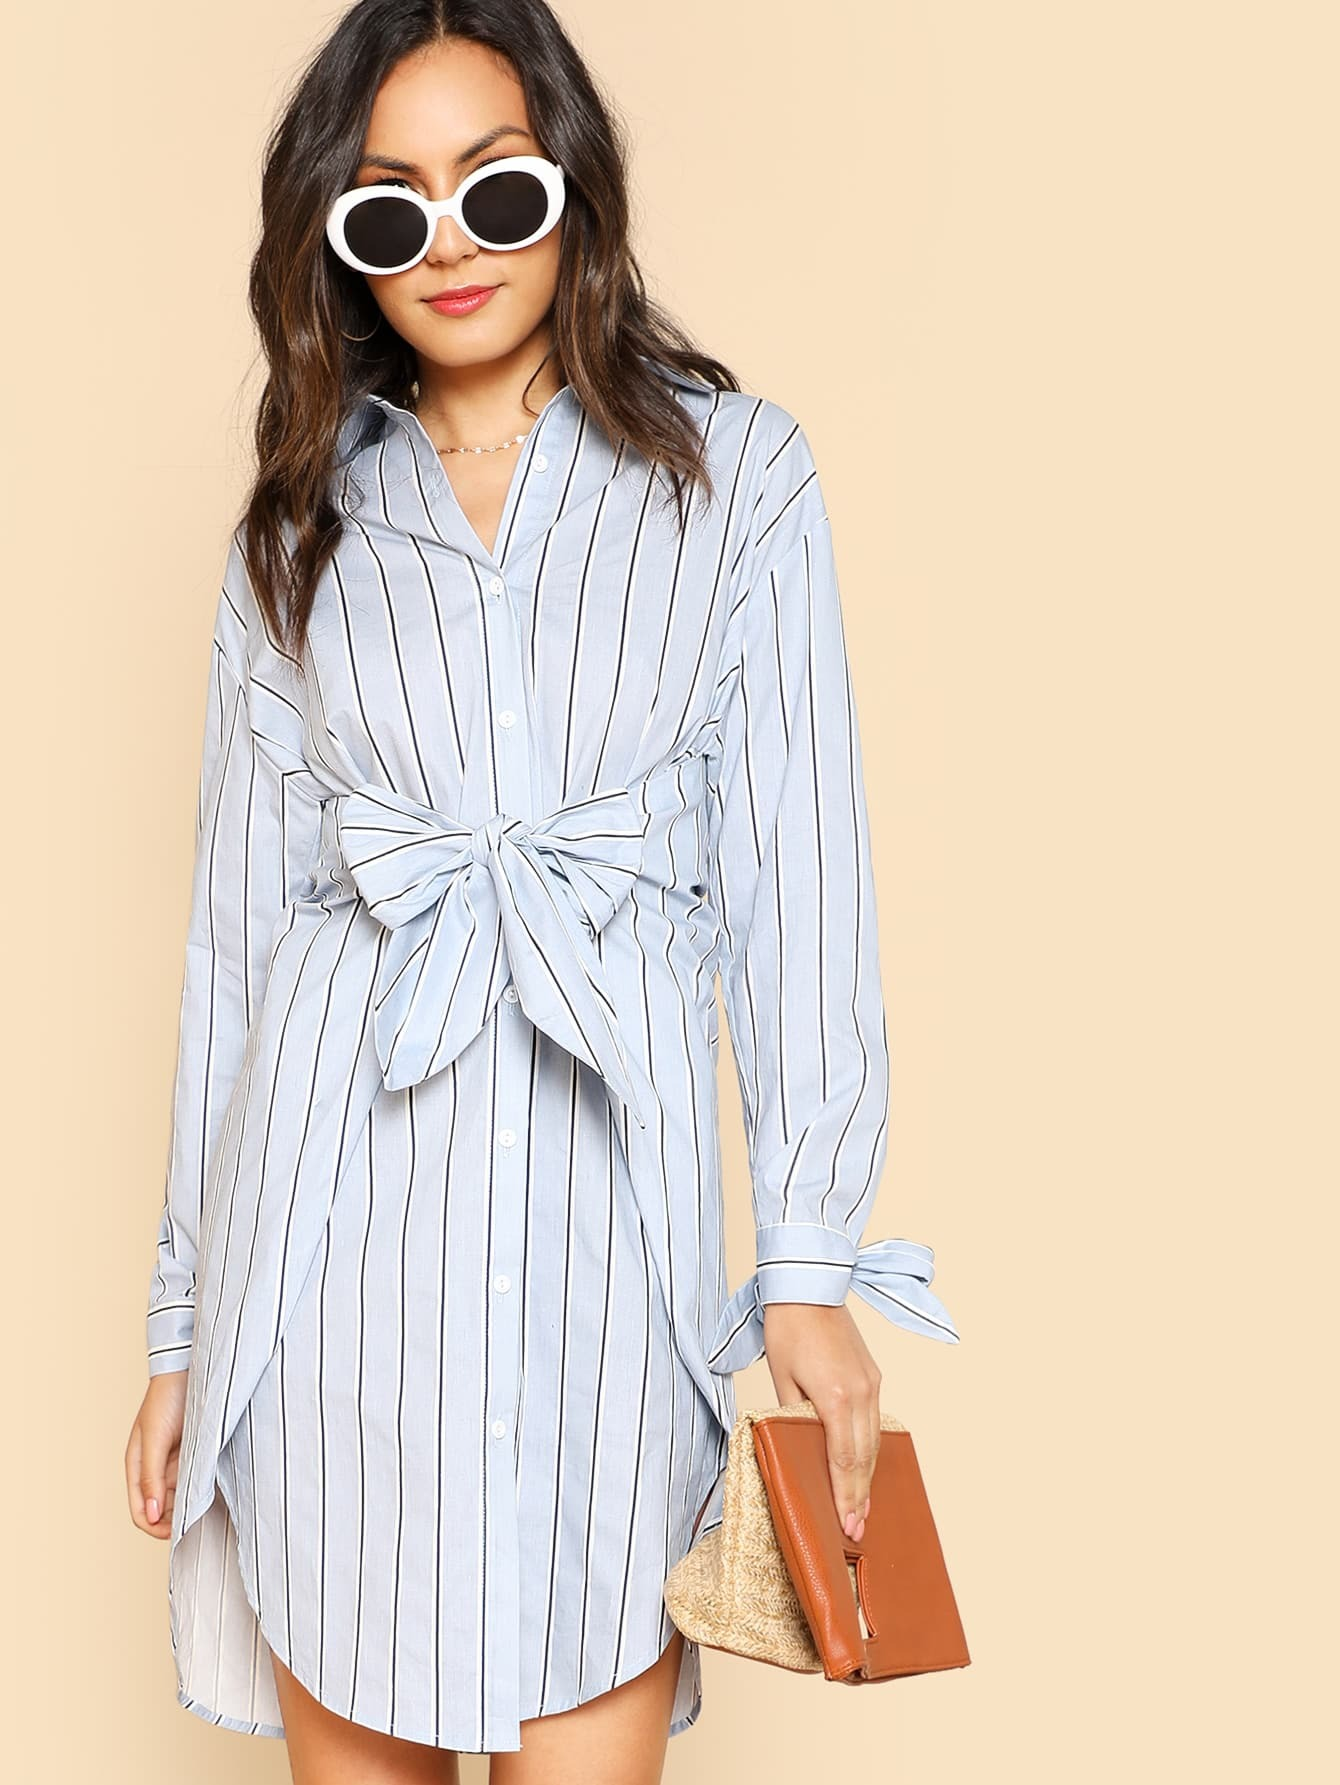 Bow Tied Detail Striped Shirt Dress contrast collar bow tied detail striped dress